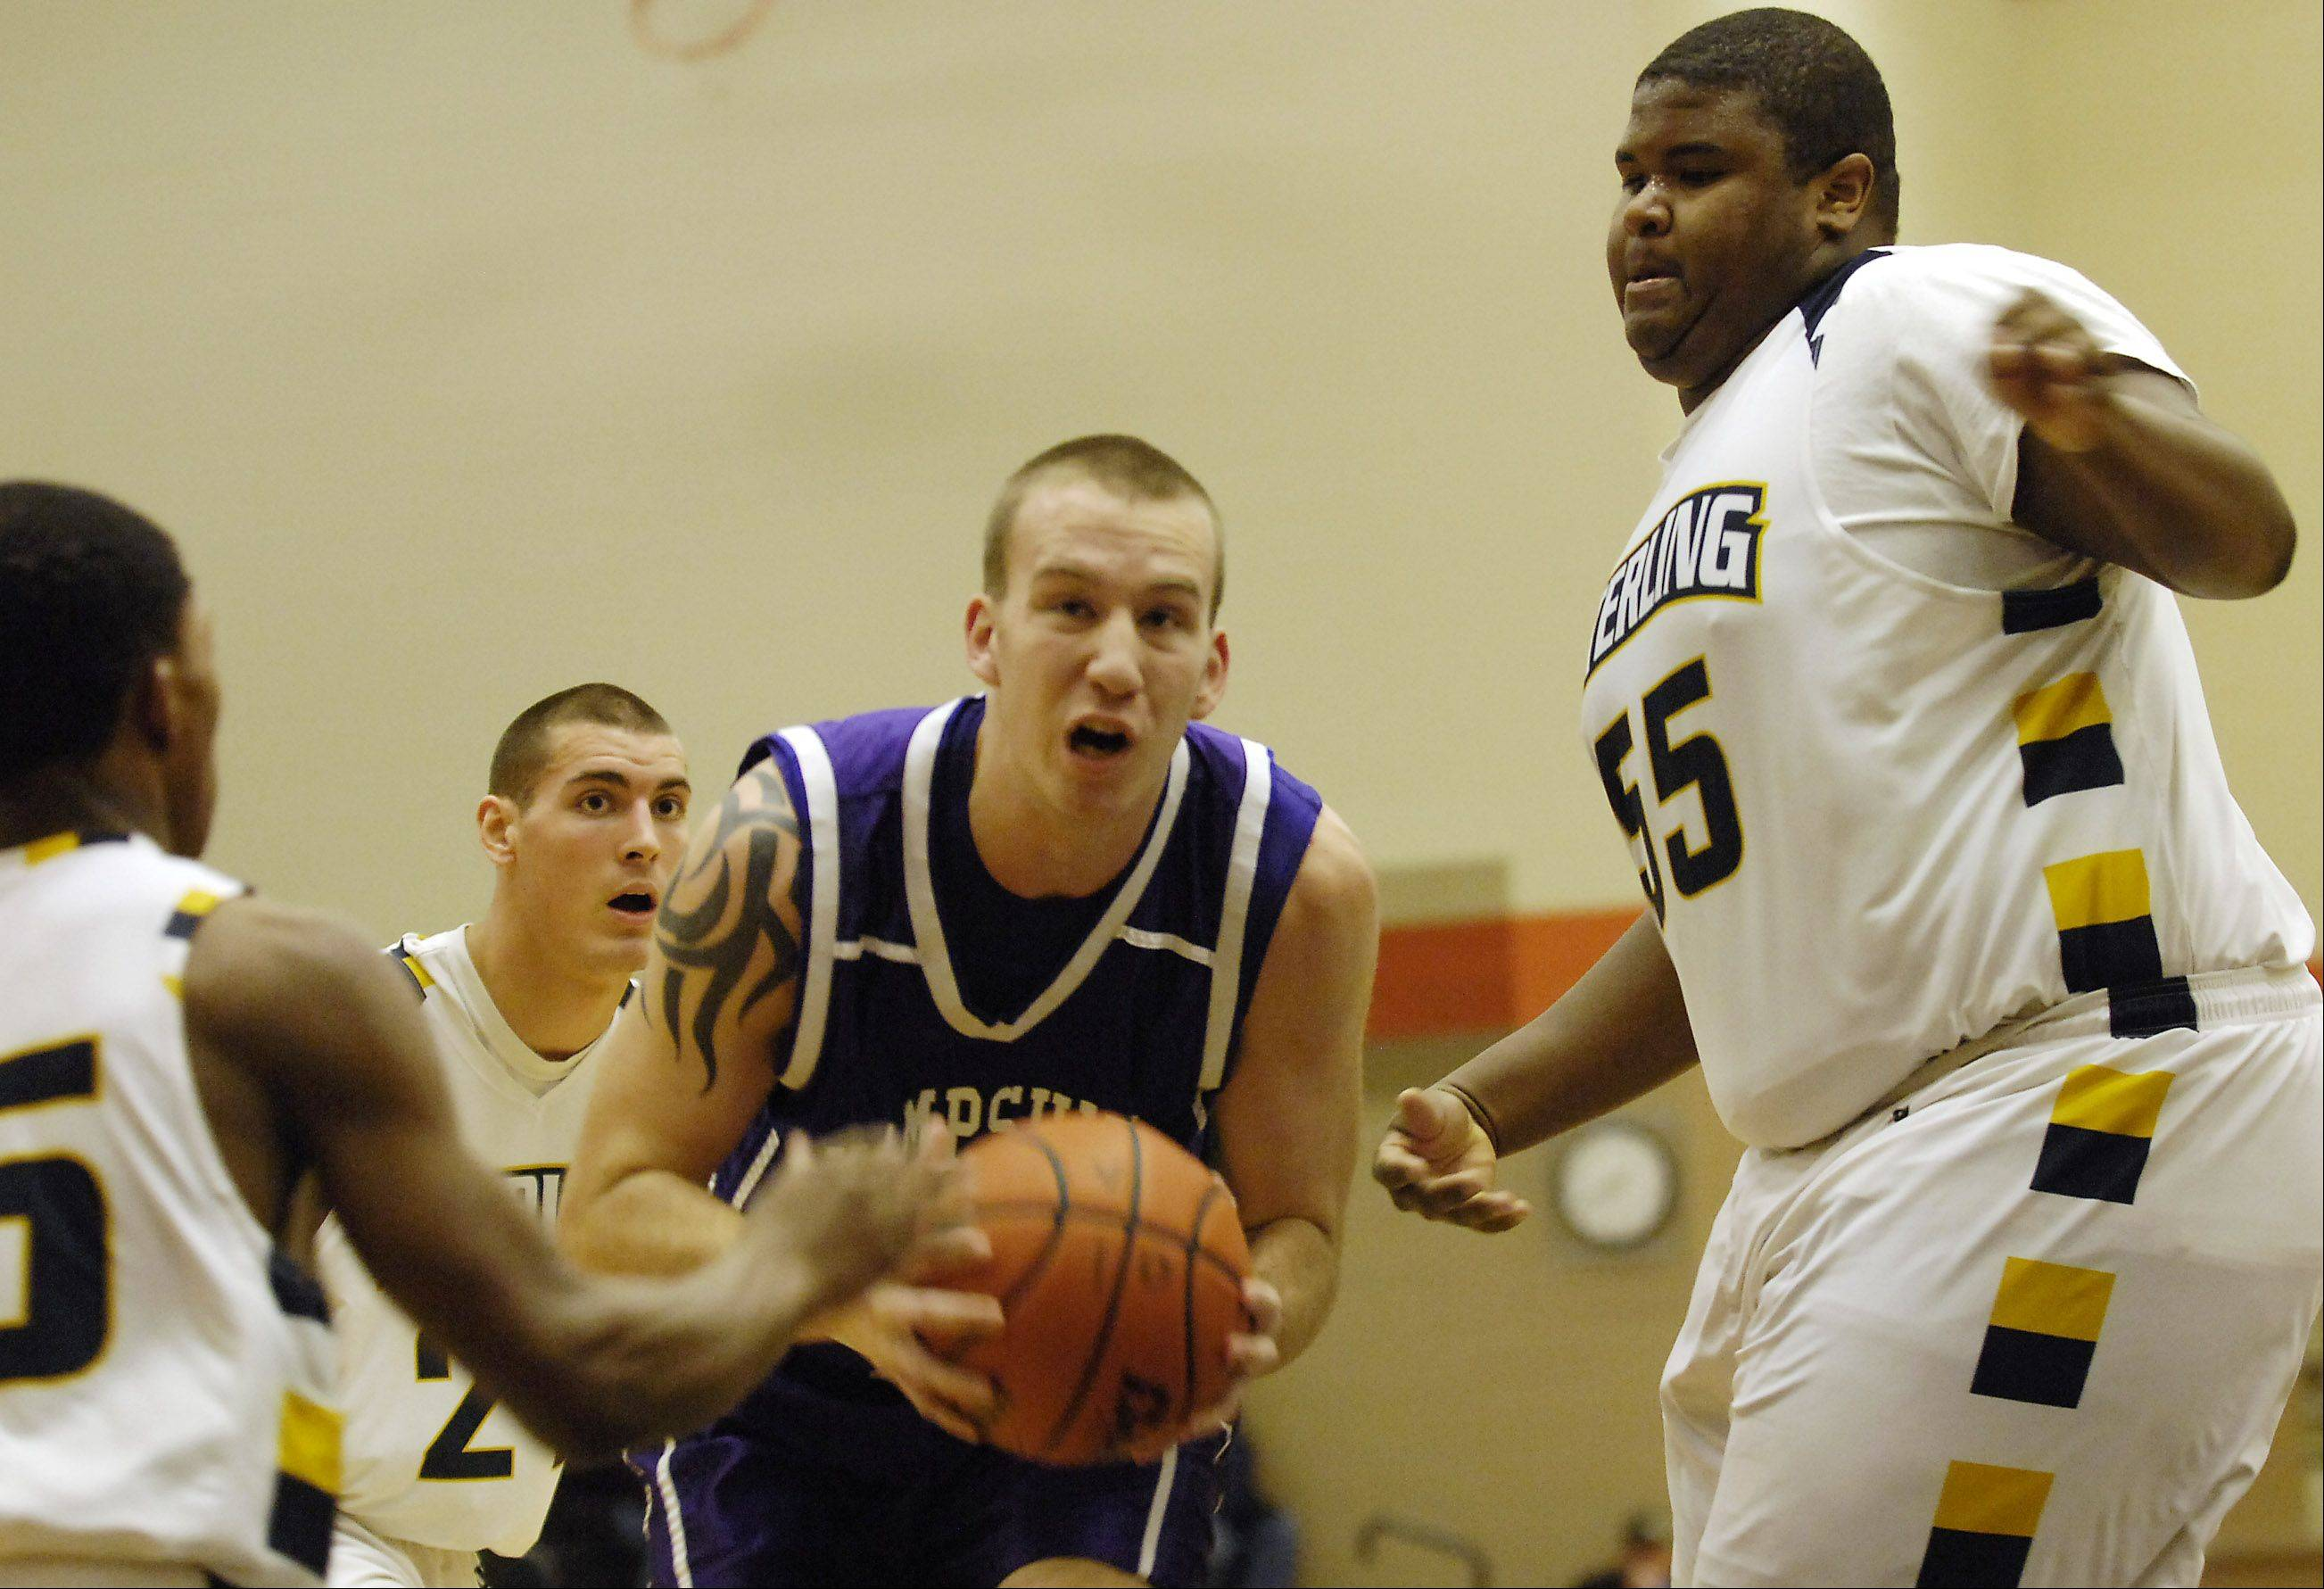 Hampshire's Tyler Watzlawick drives past Sterling's Jordan Neal during their game Wednesday in Dekalb.